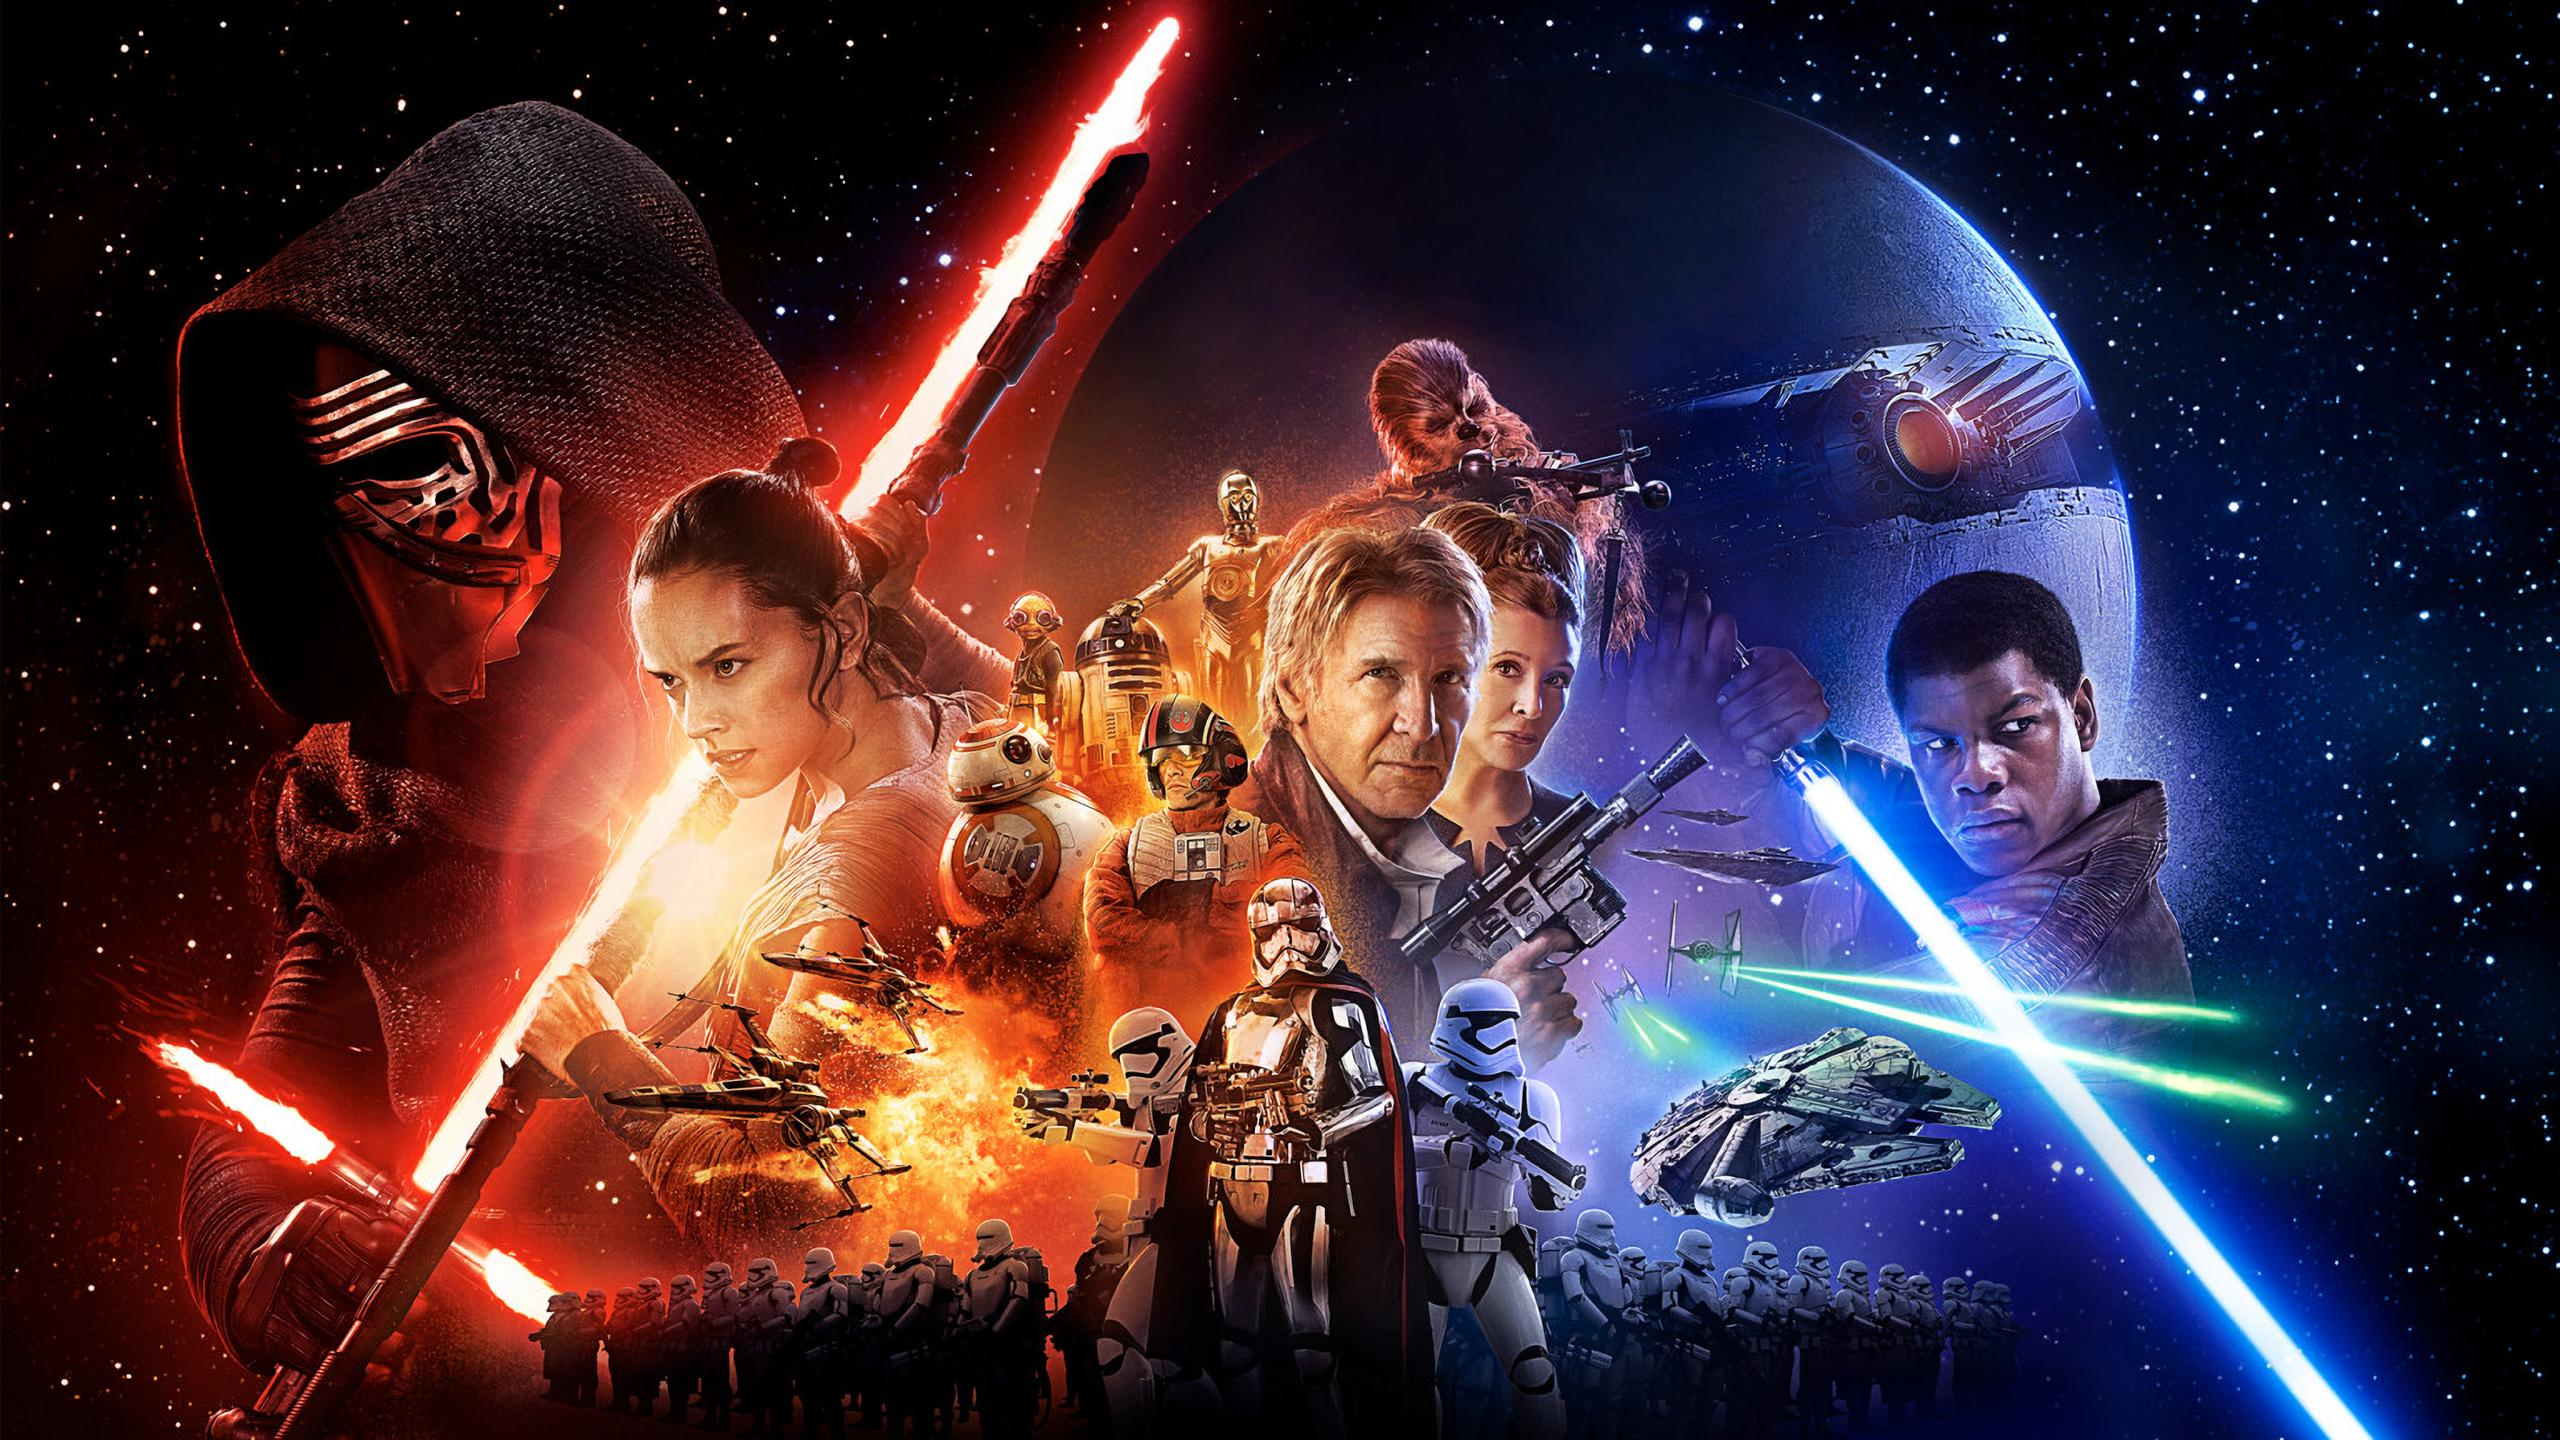 191 Star Wars Episode VII: The Force Awakens HD Wallpapers